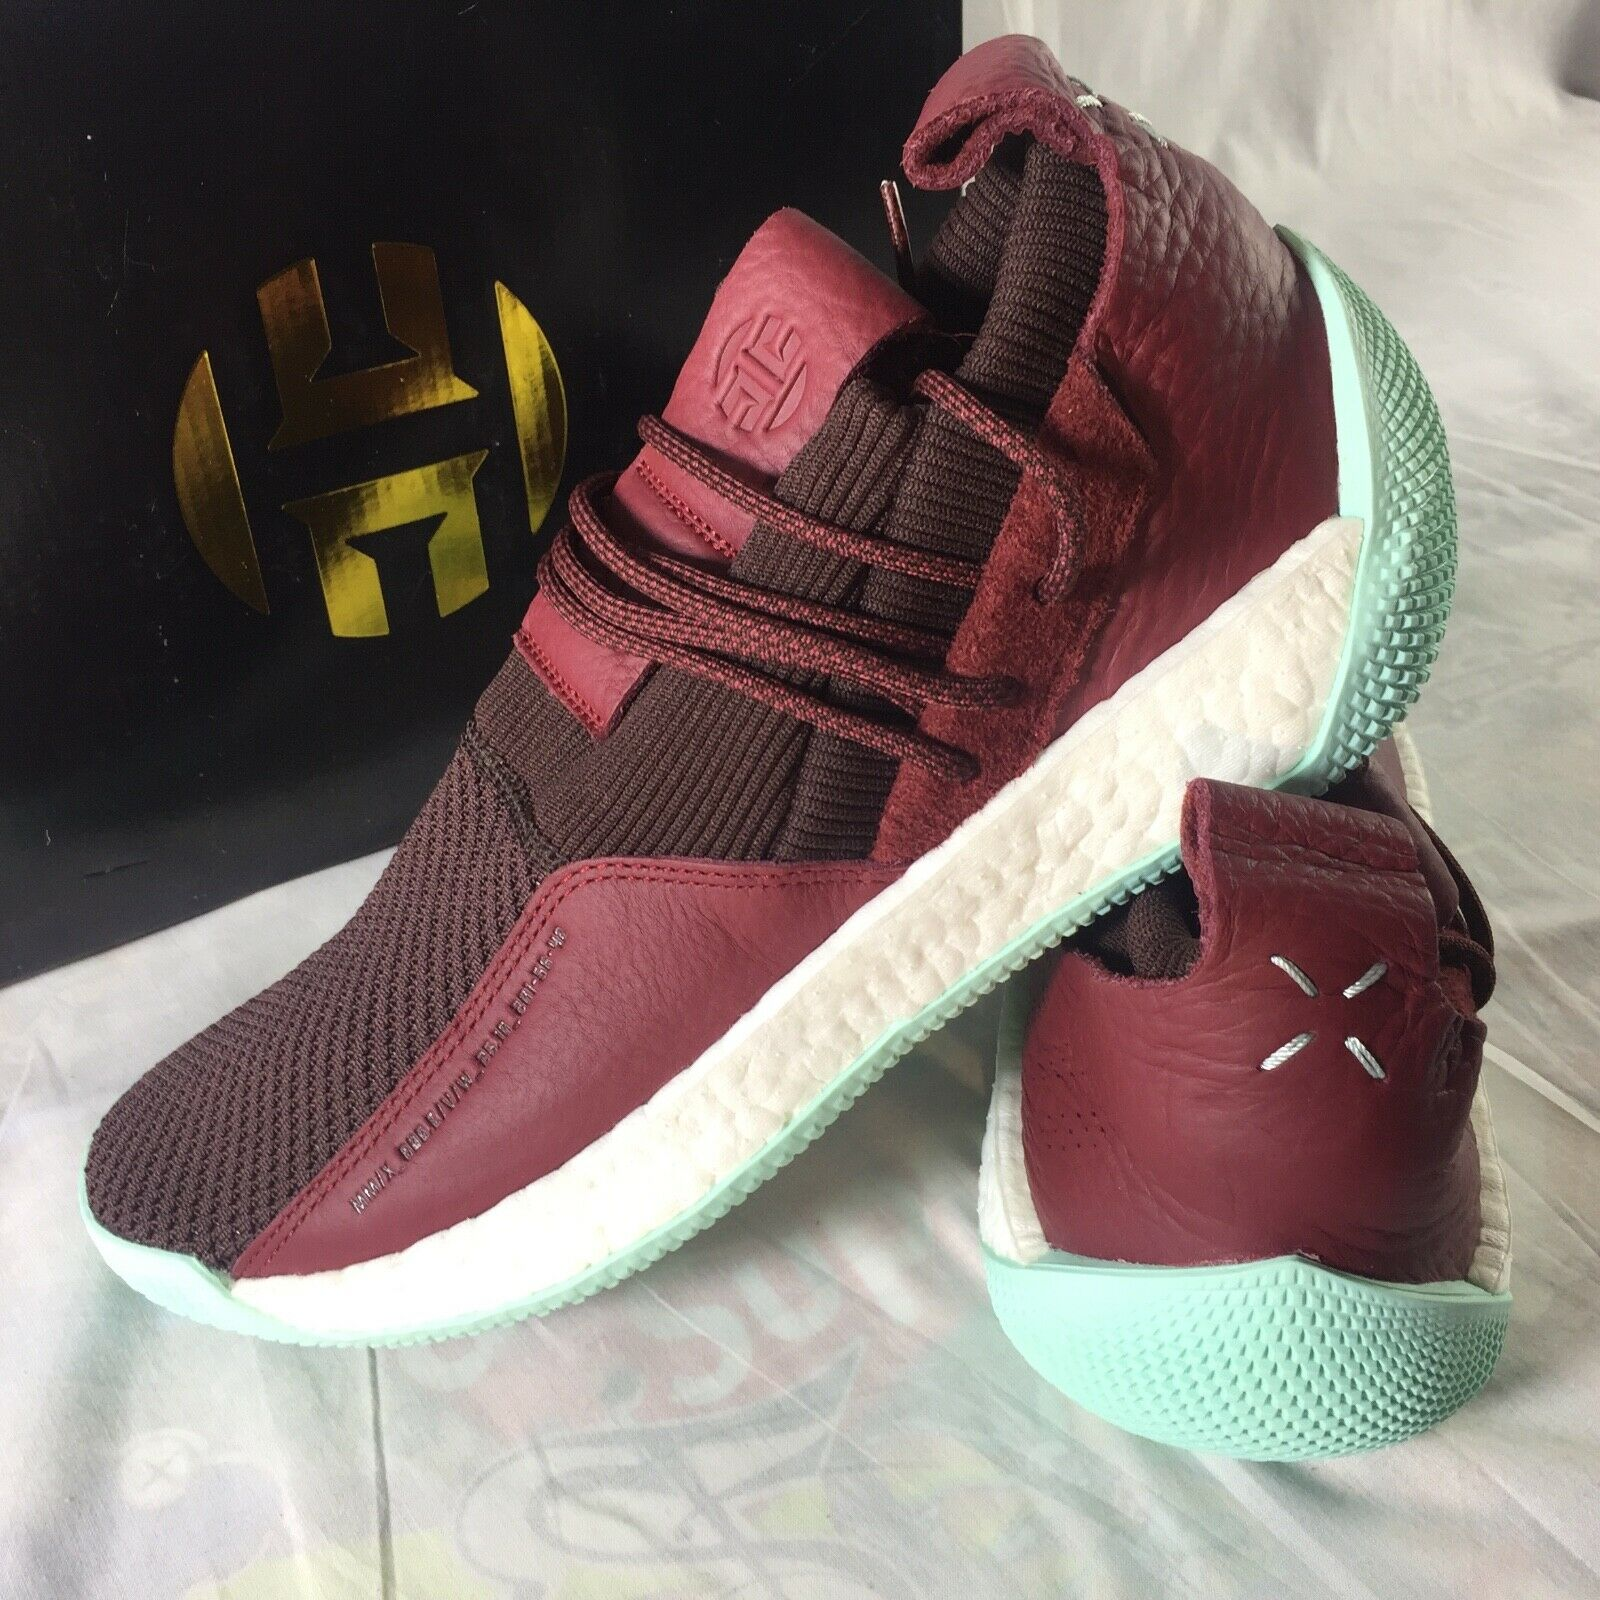 809db9697 Adidas Harden LS 2 Lace Men s Size 12 Boost Boost Boost Basketball shoes  Sneakers NEW CG6277